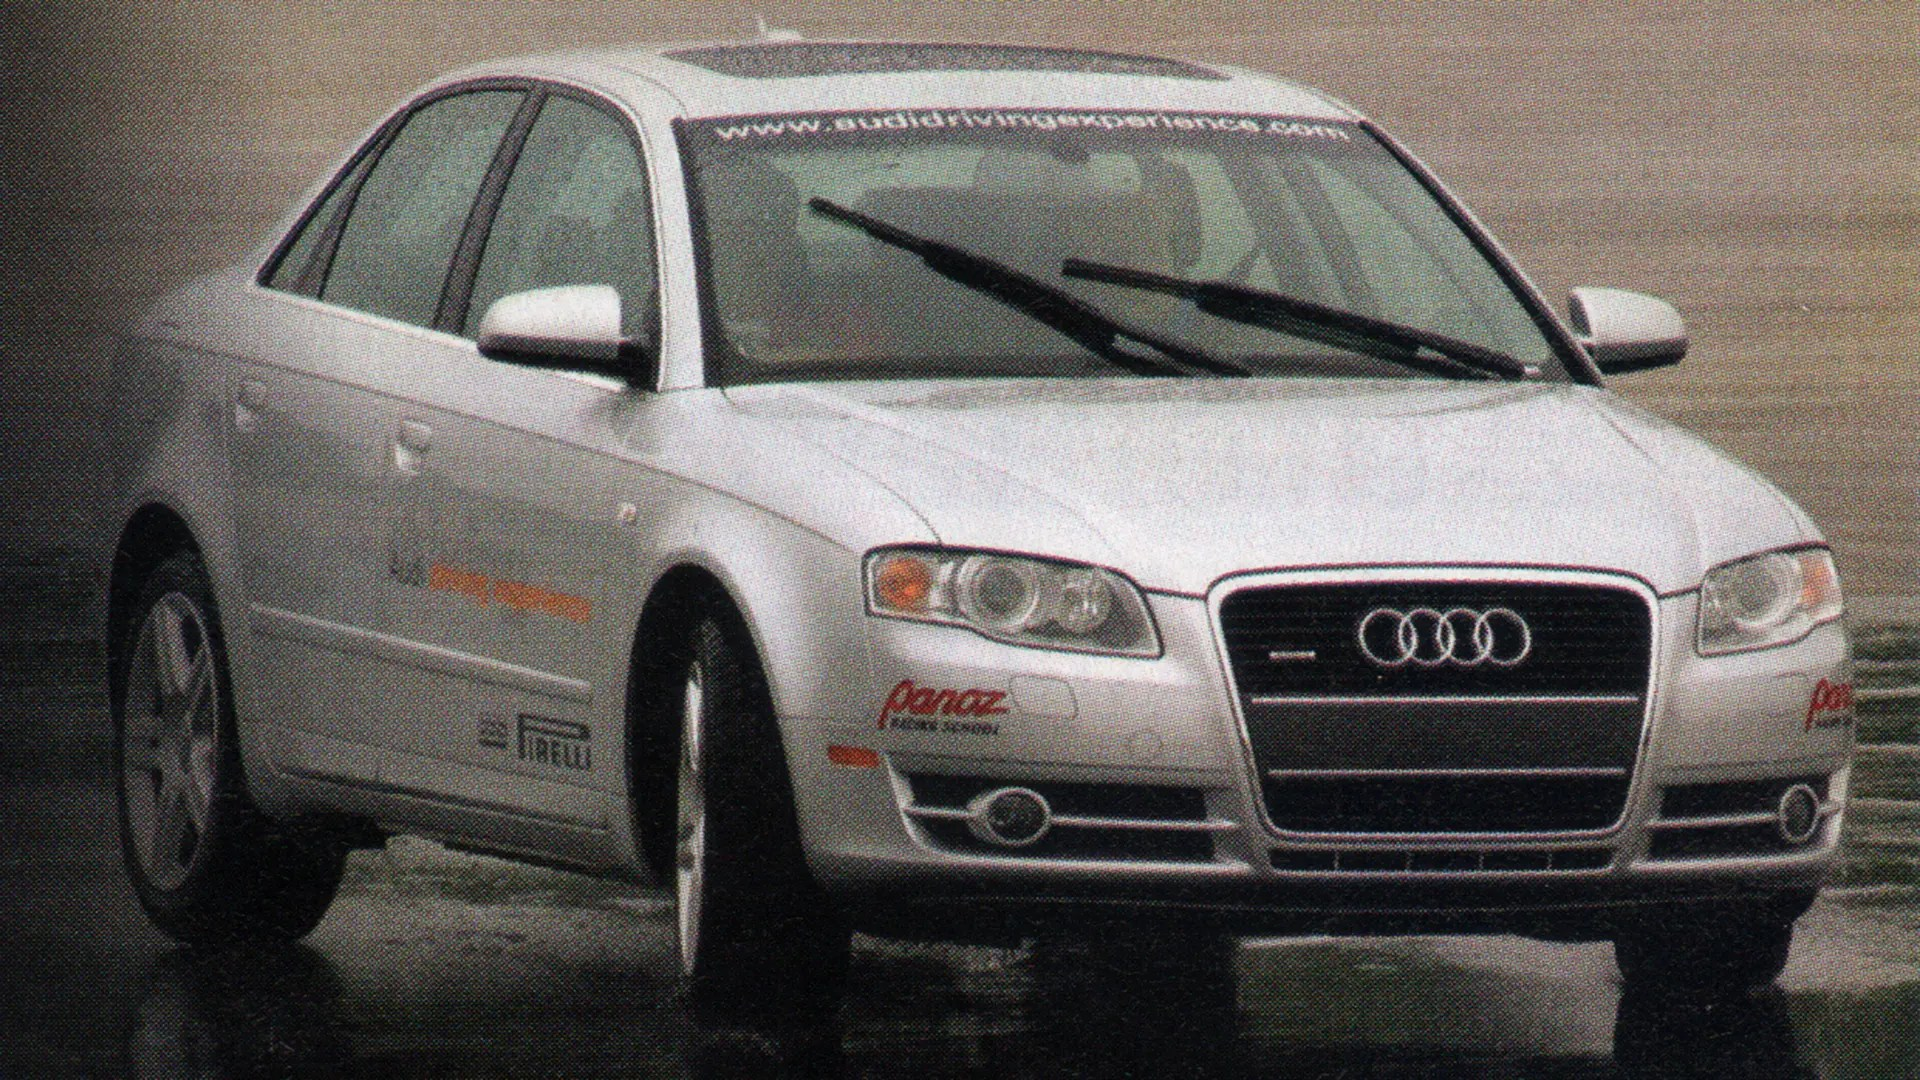 Audi's Driving Experience